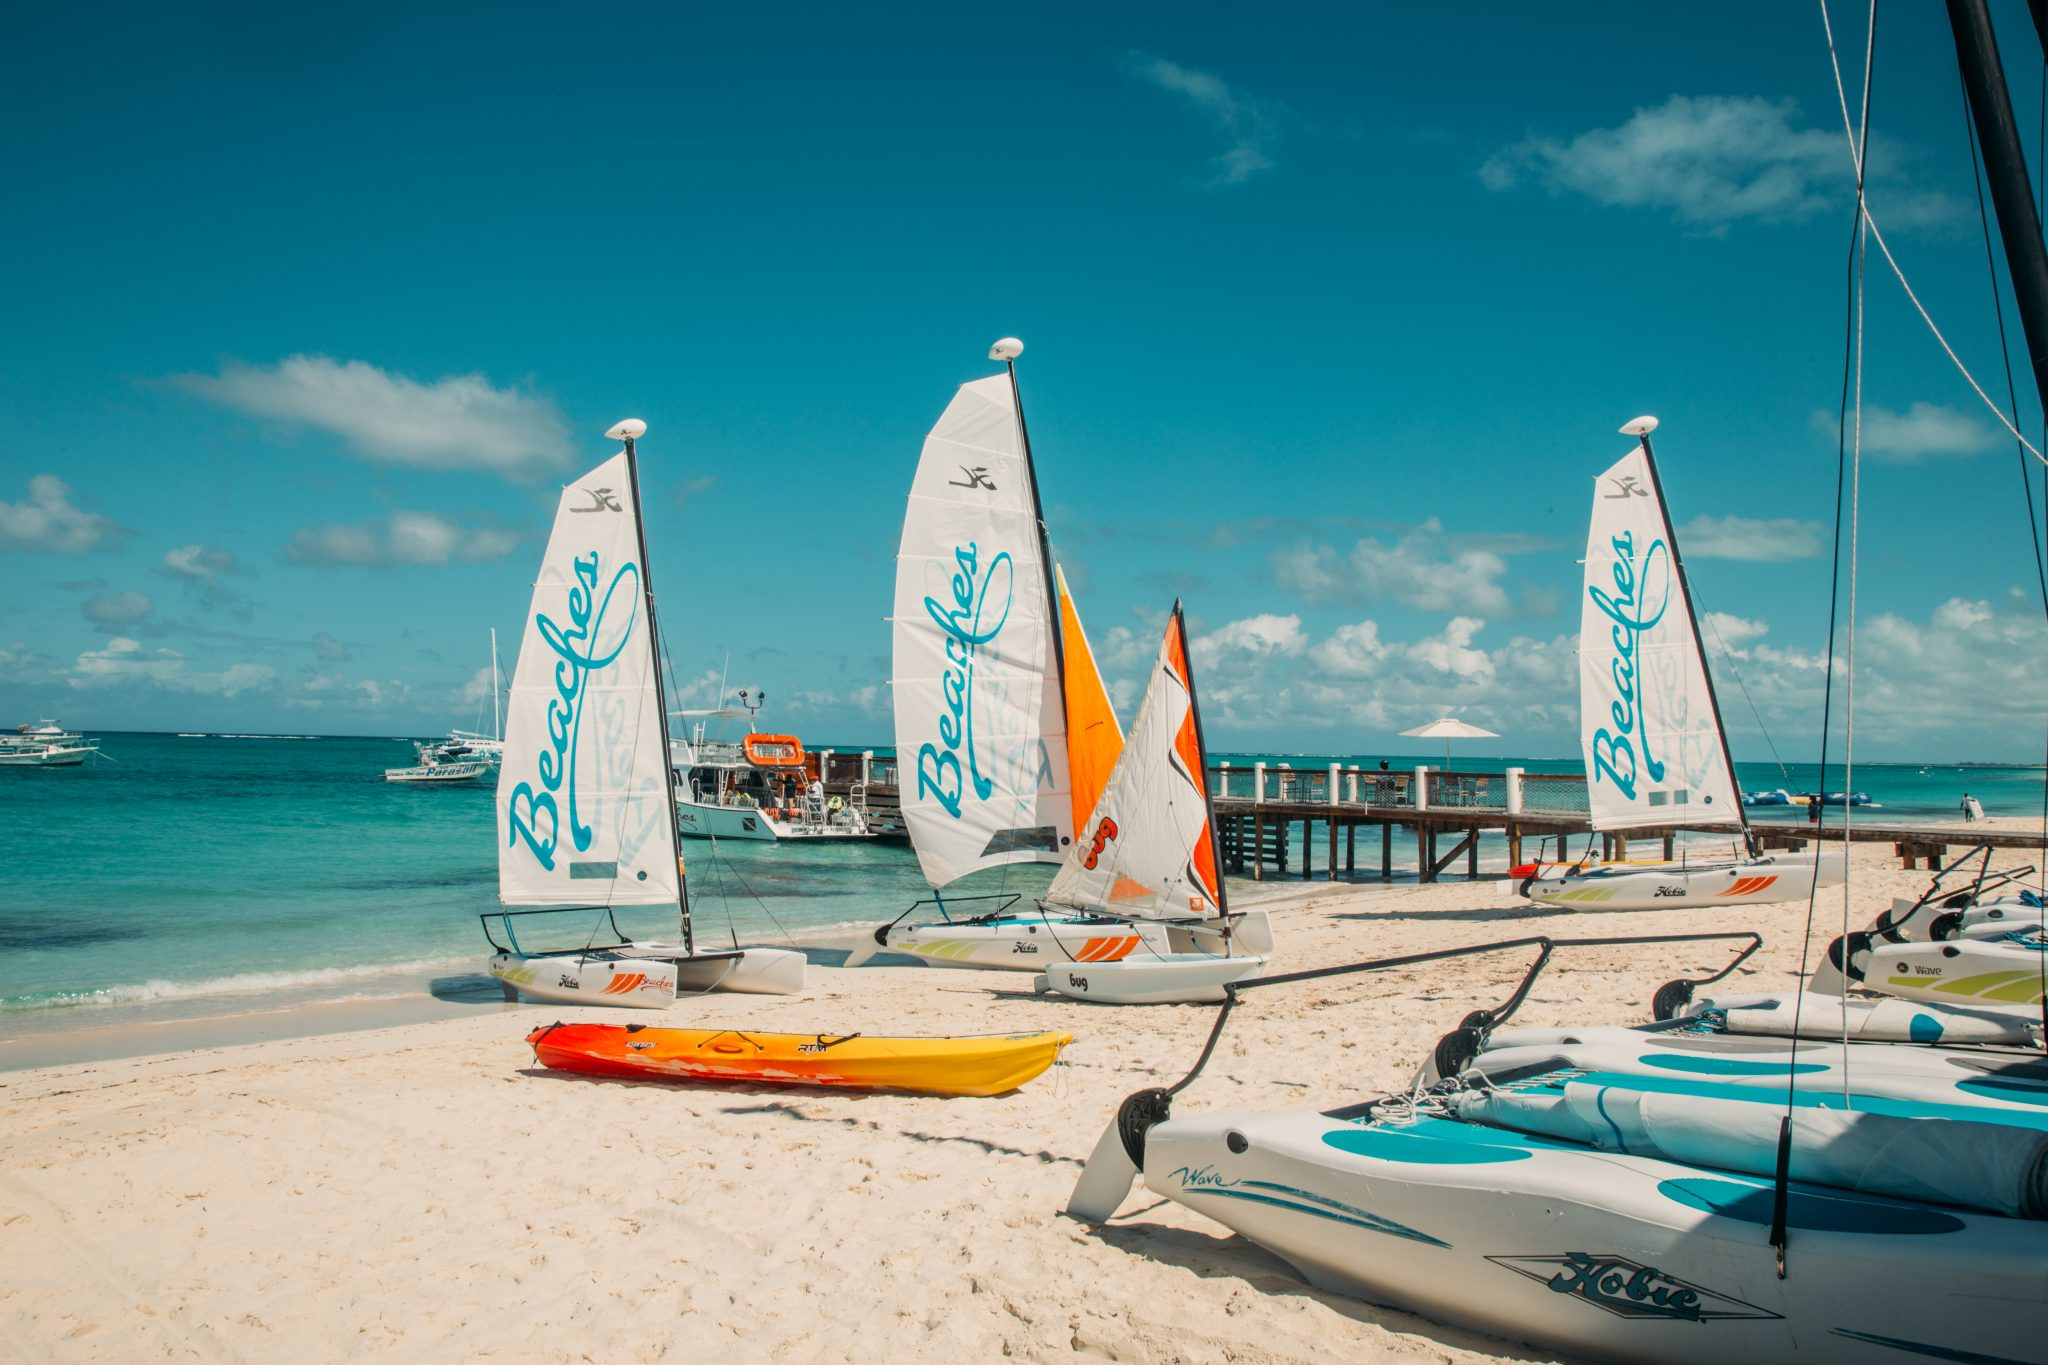 I Stayed at Beaches Turks and Caicos During COVID-19 in 2021 – This Was My Experience